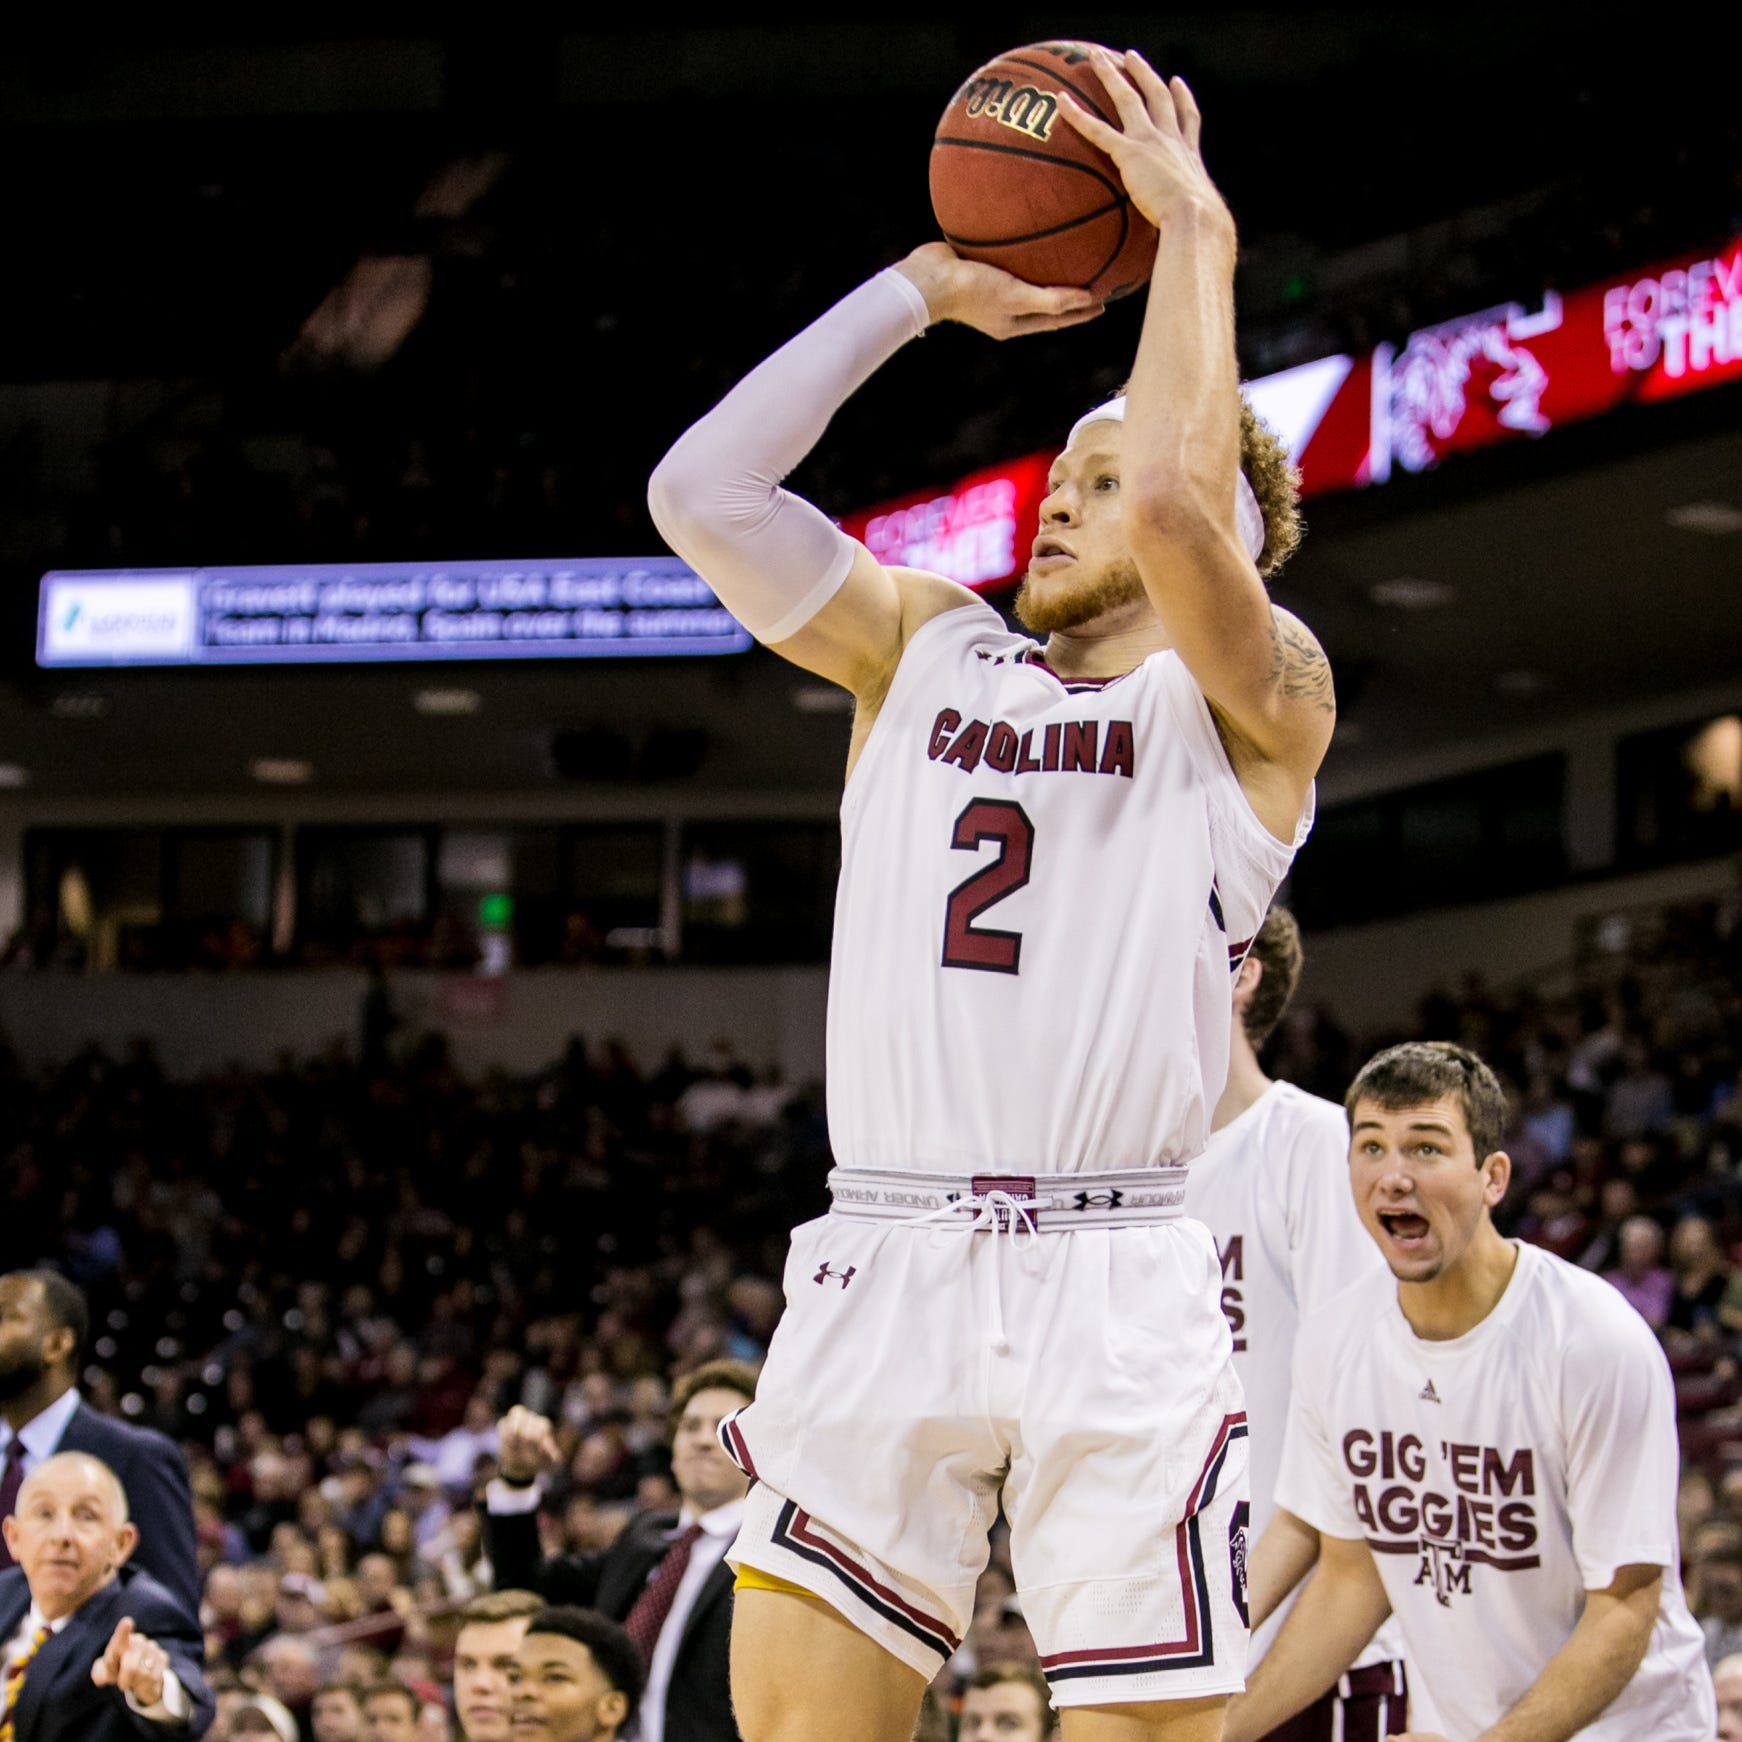 South Carolina ties a school-record for 3-pointers in victory over Texas A&M